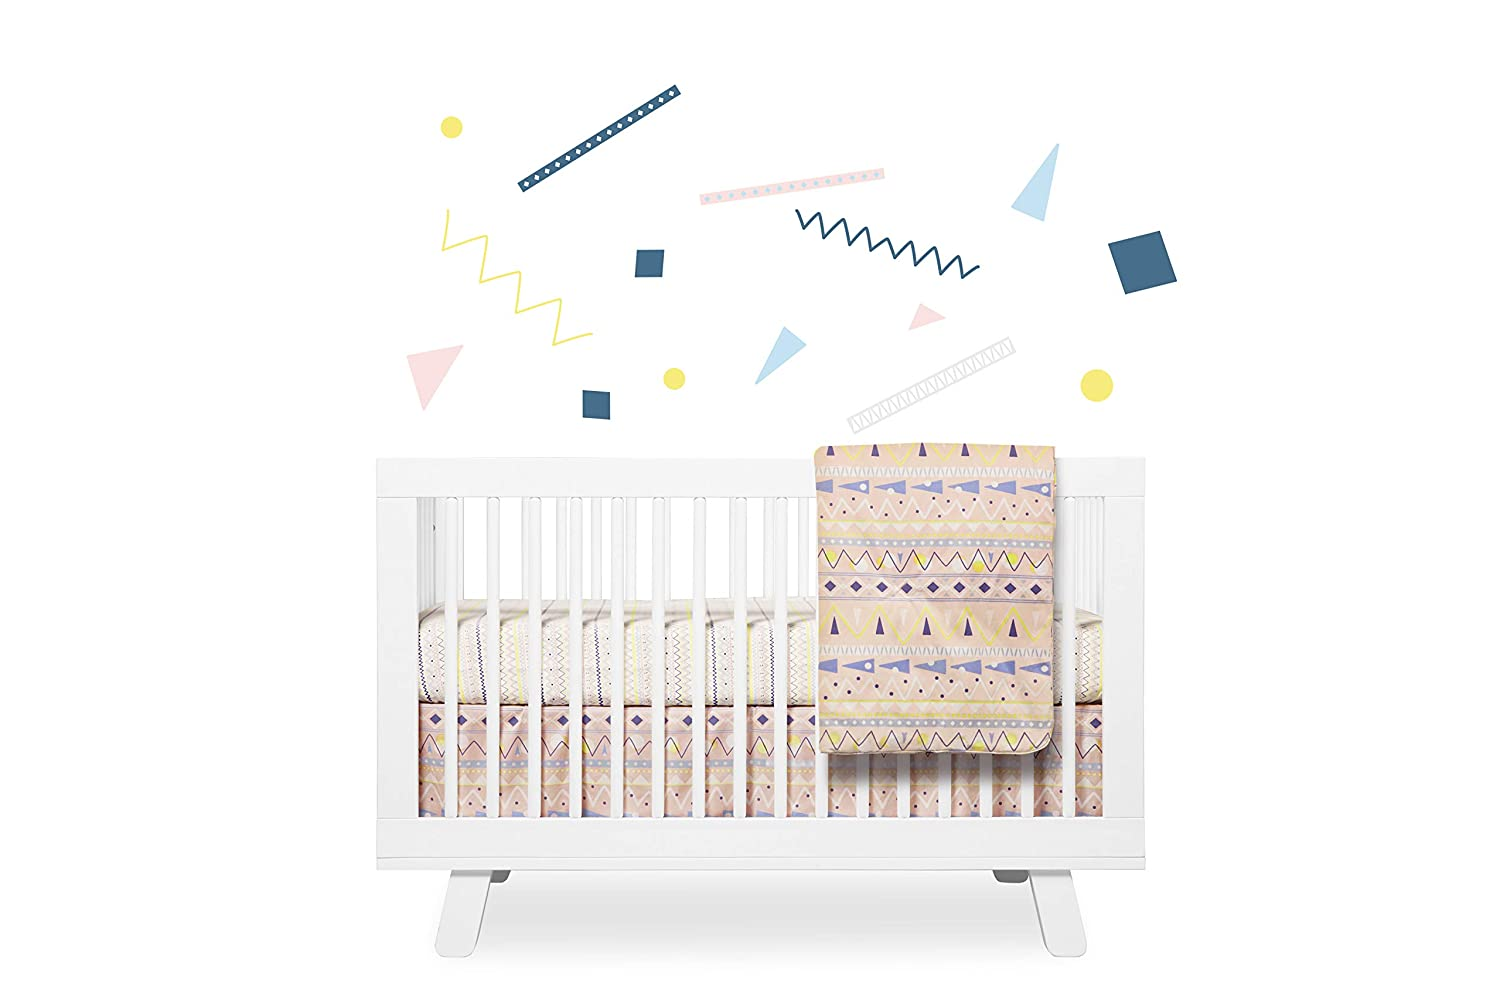 Babyletto 5-Piece Nursery Crib Bedding Set, Fitted Crib Sheet, Crib Skirt, Play Blanket, Contour Changing Pad Cover & Wall Decals, Desert Dreams